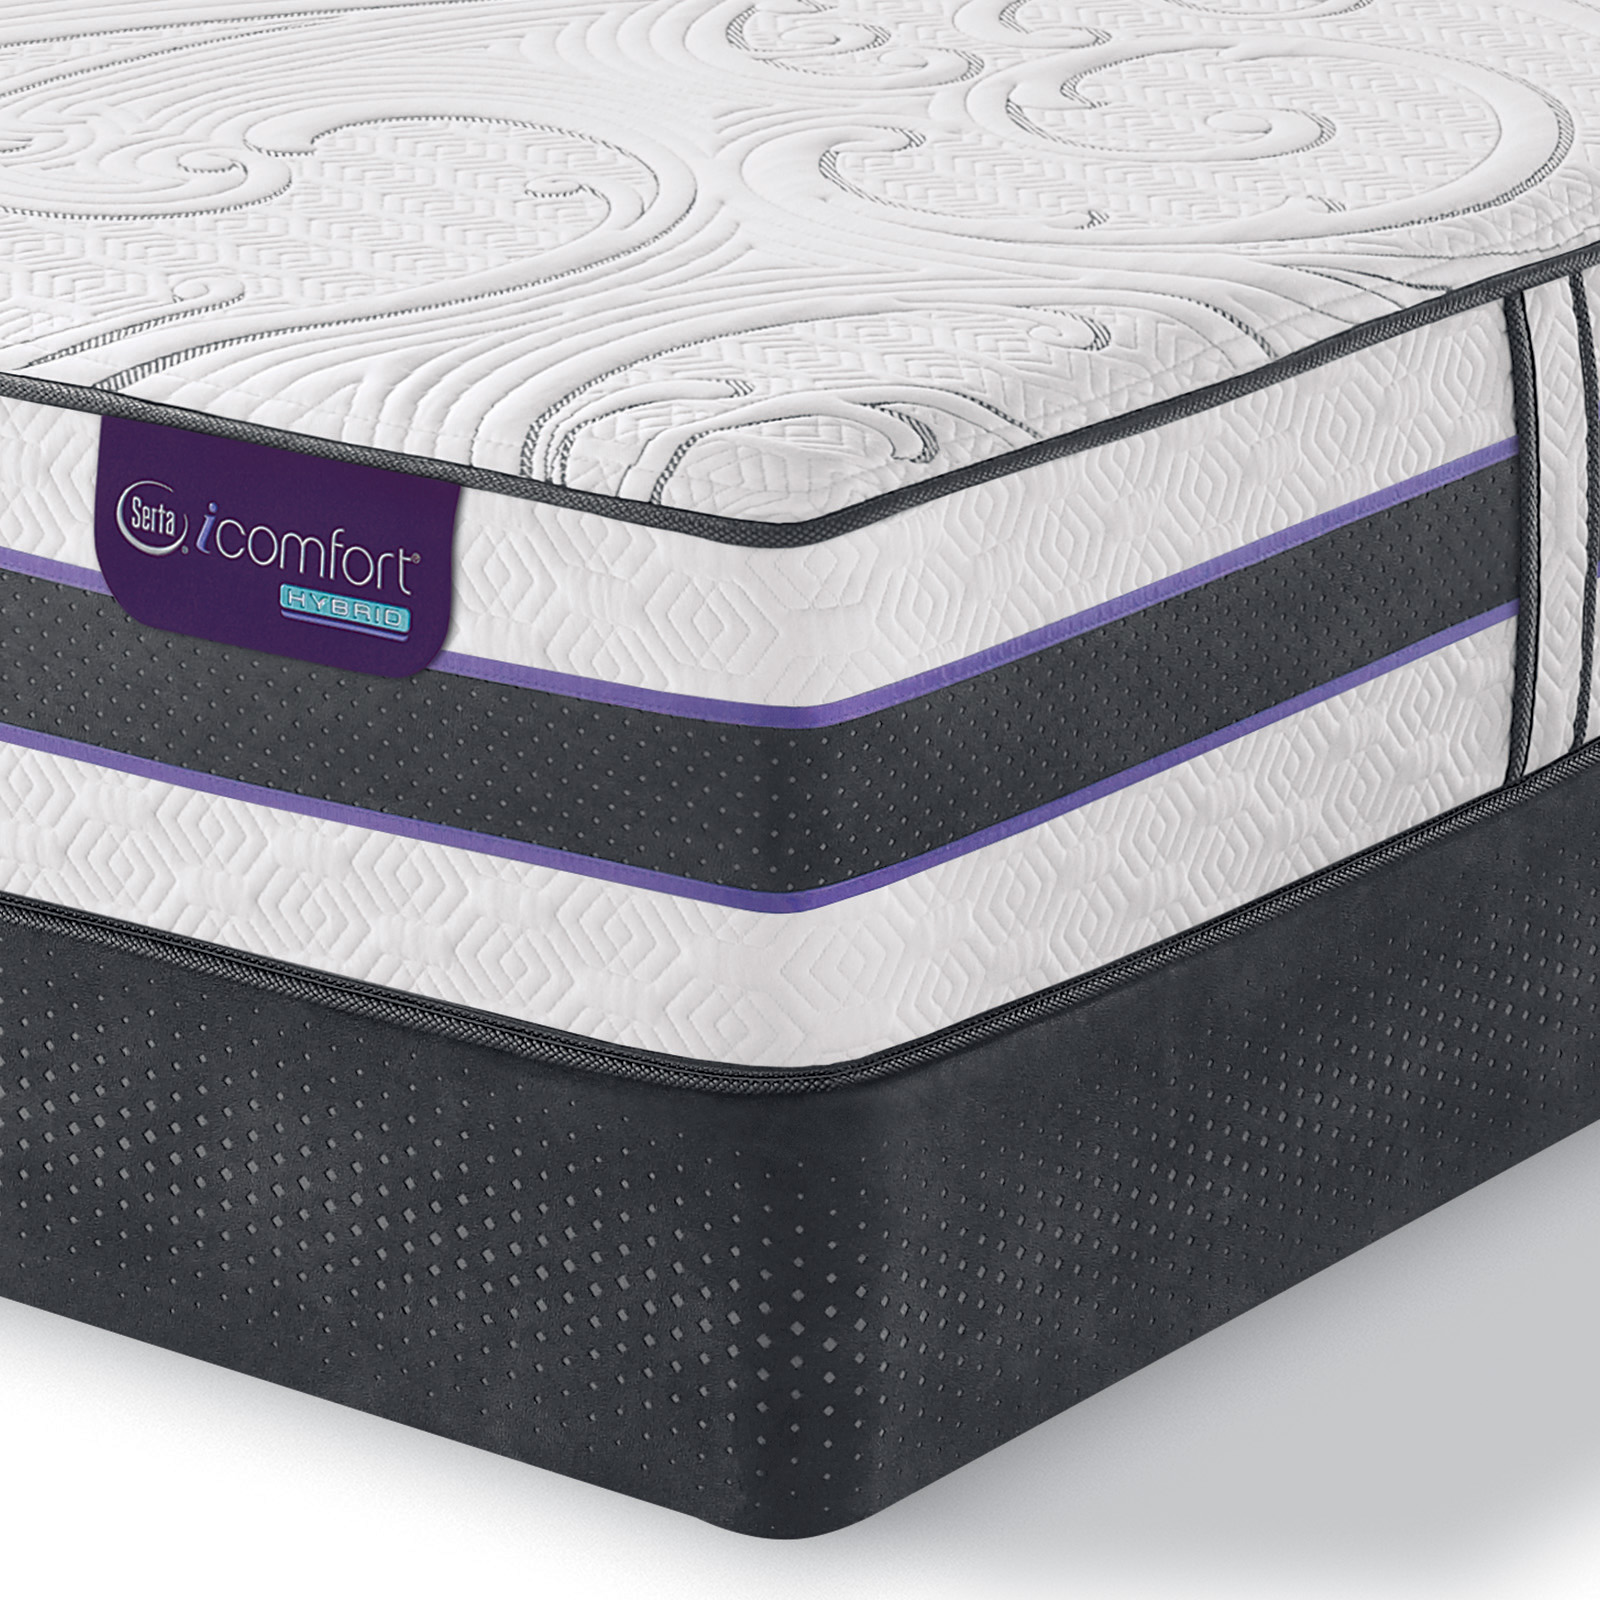 Hybrid-Smart-Support-HB300S-Queen-Mattress